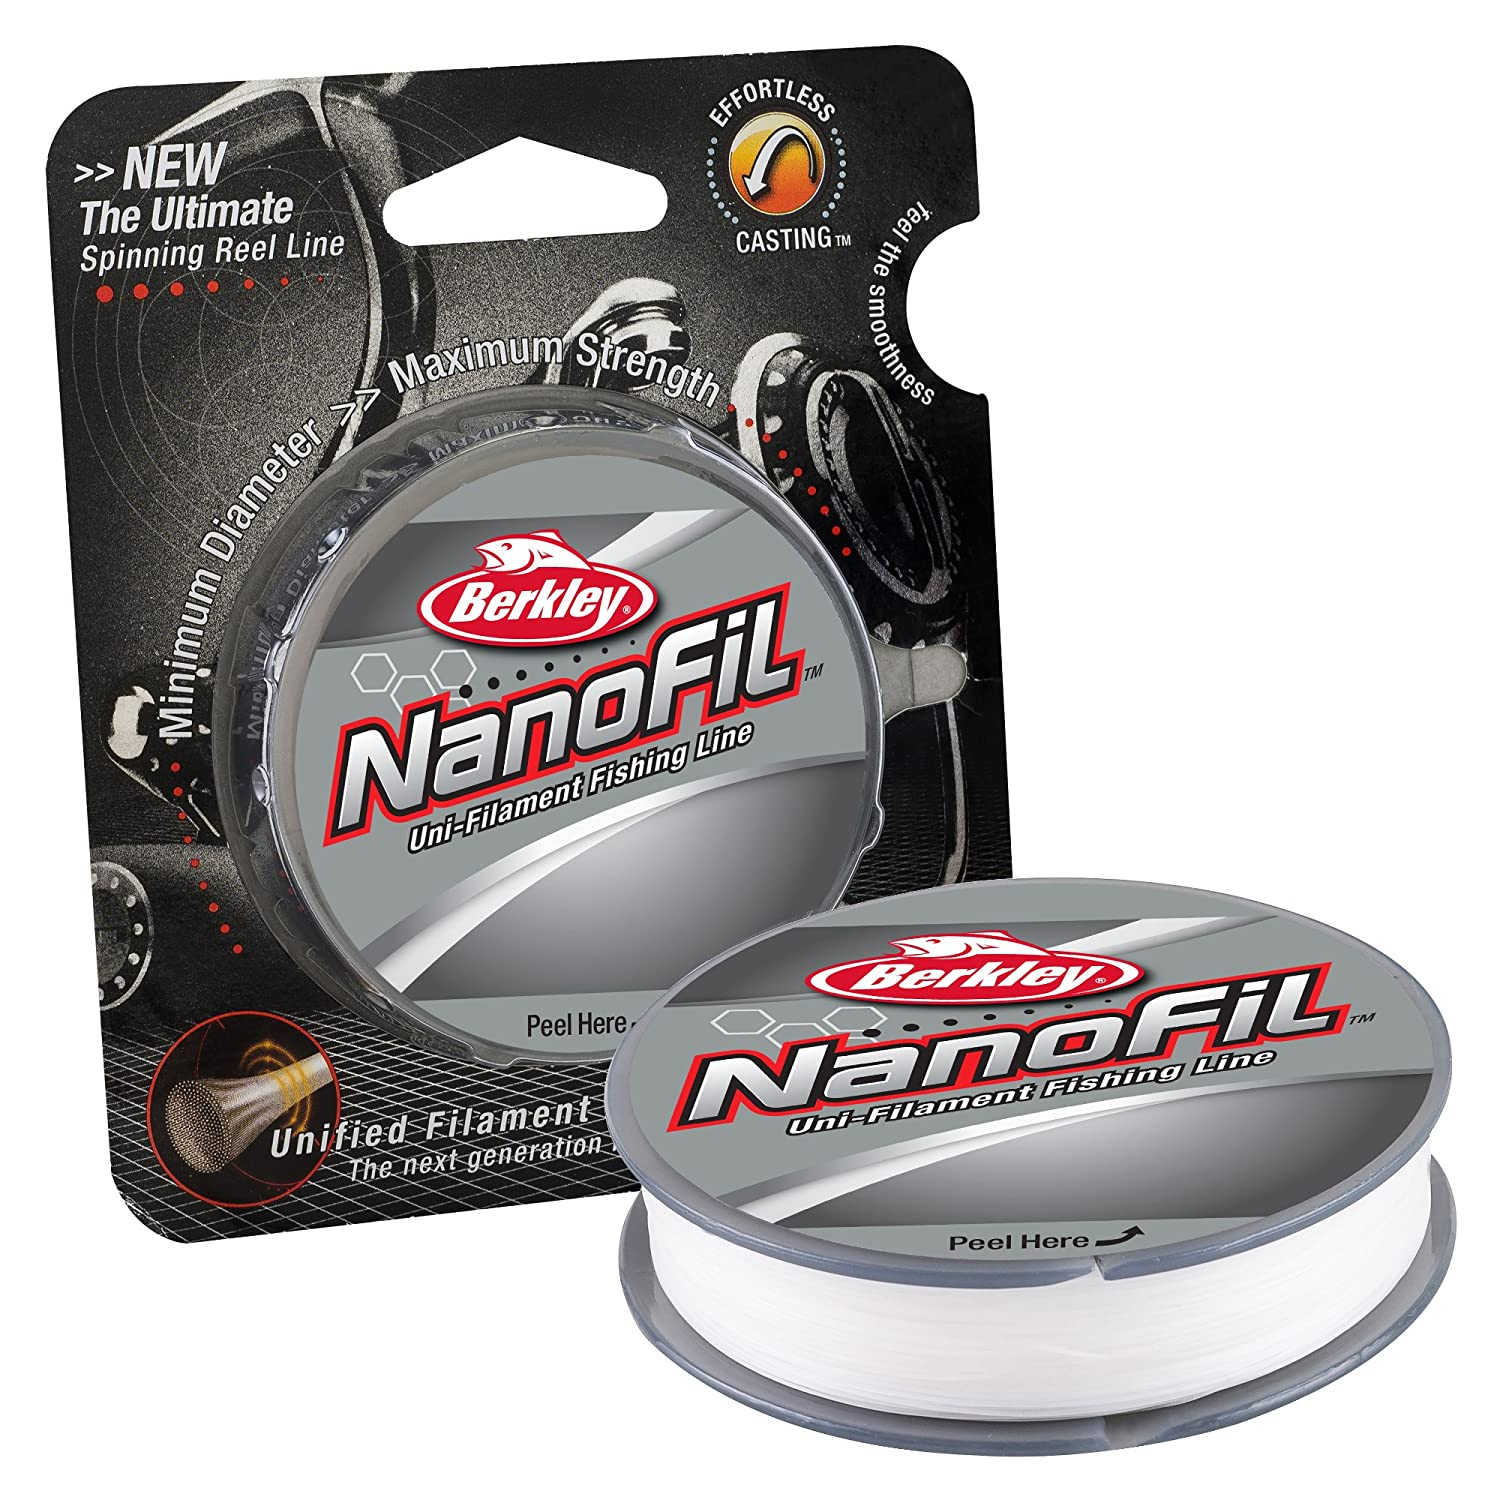 Berkley Nanofil ユニフィラメント 直径0.010インチ 釣り糸 B008UFG1C8 1500-Yard Spool|Clear Mist Clear Mist 1500-Yard Spool